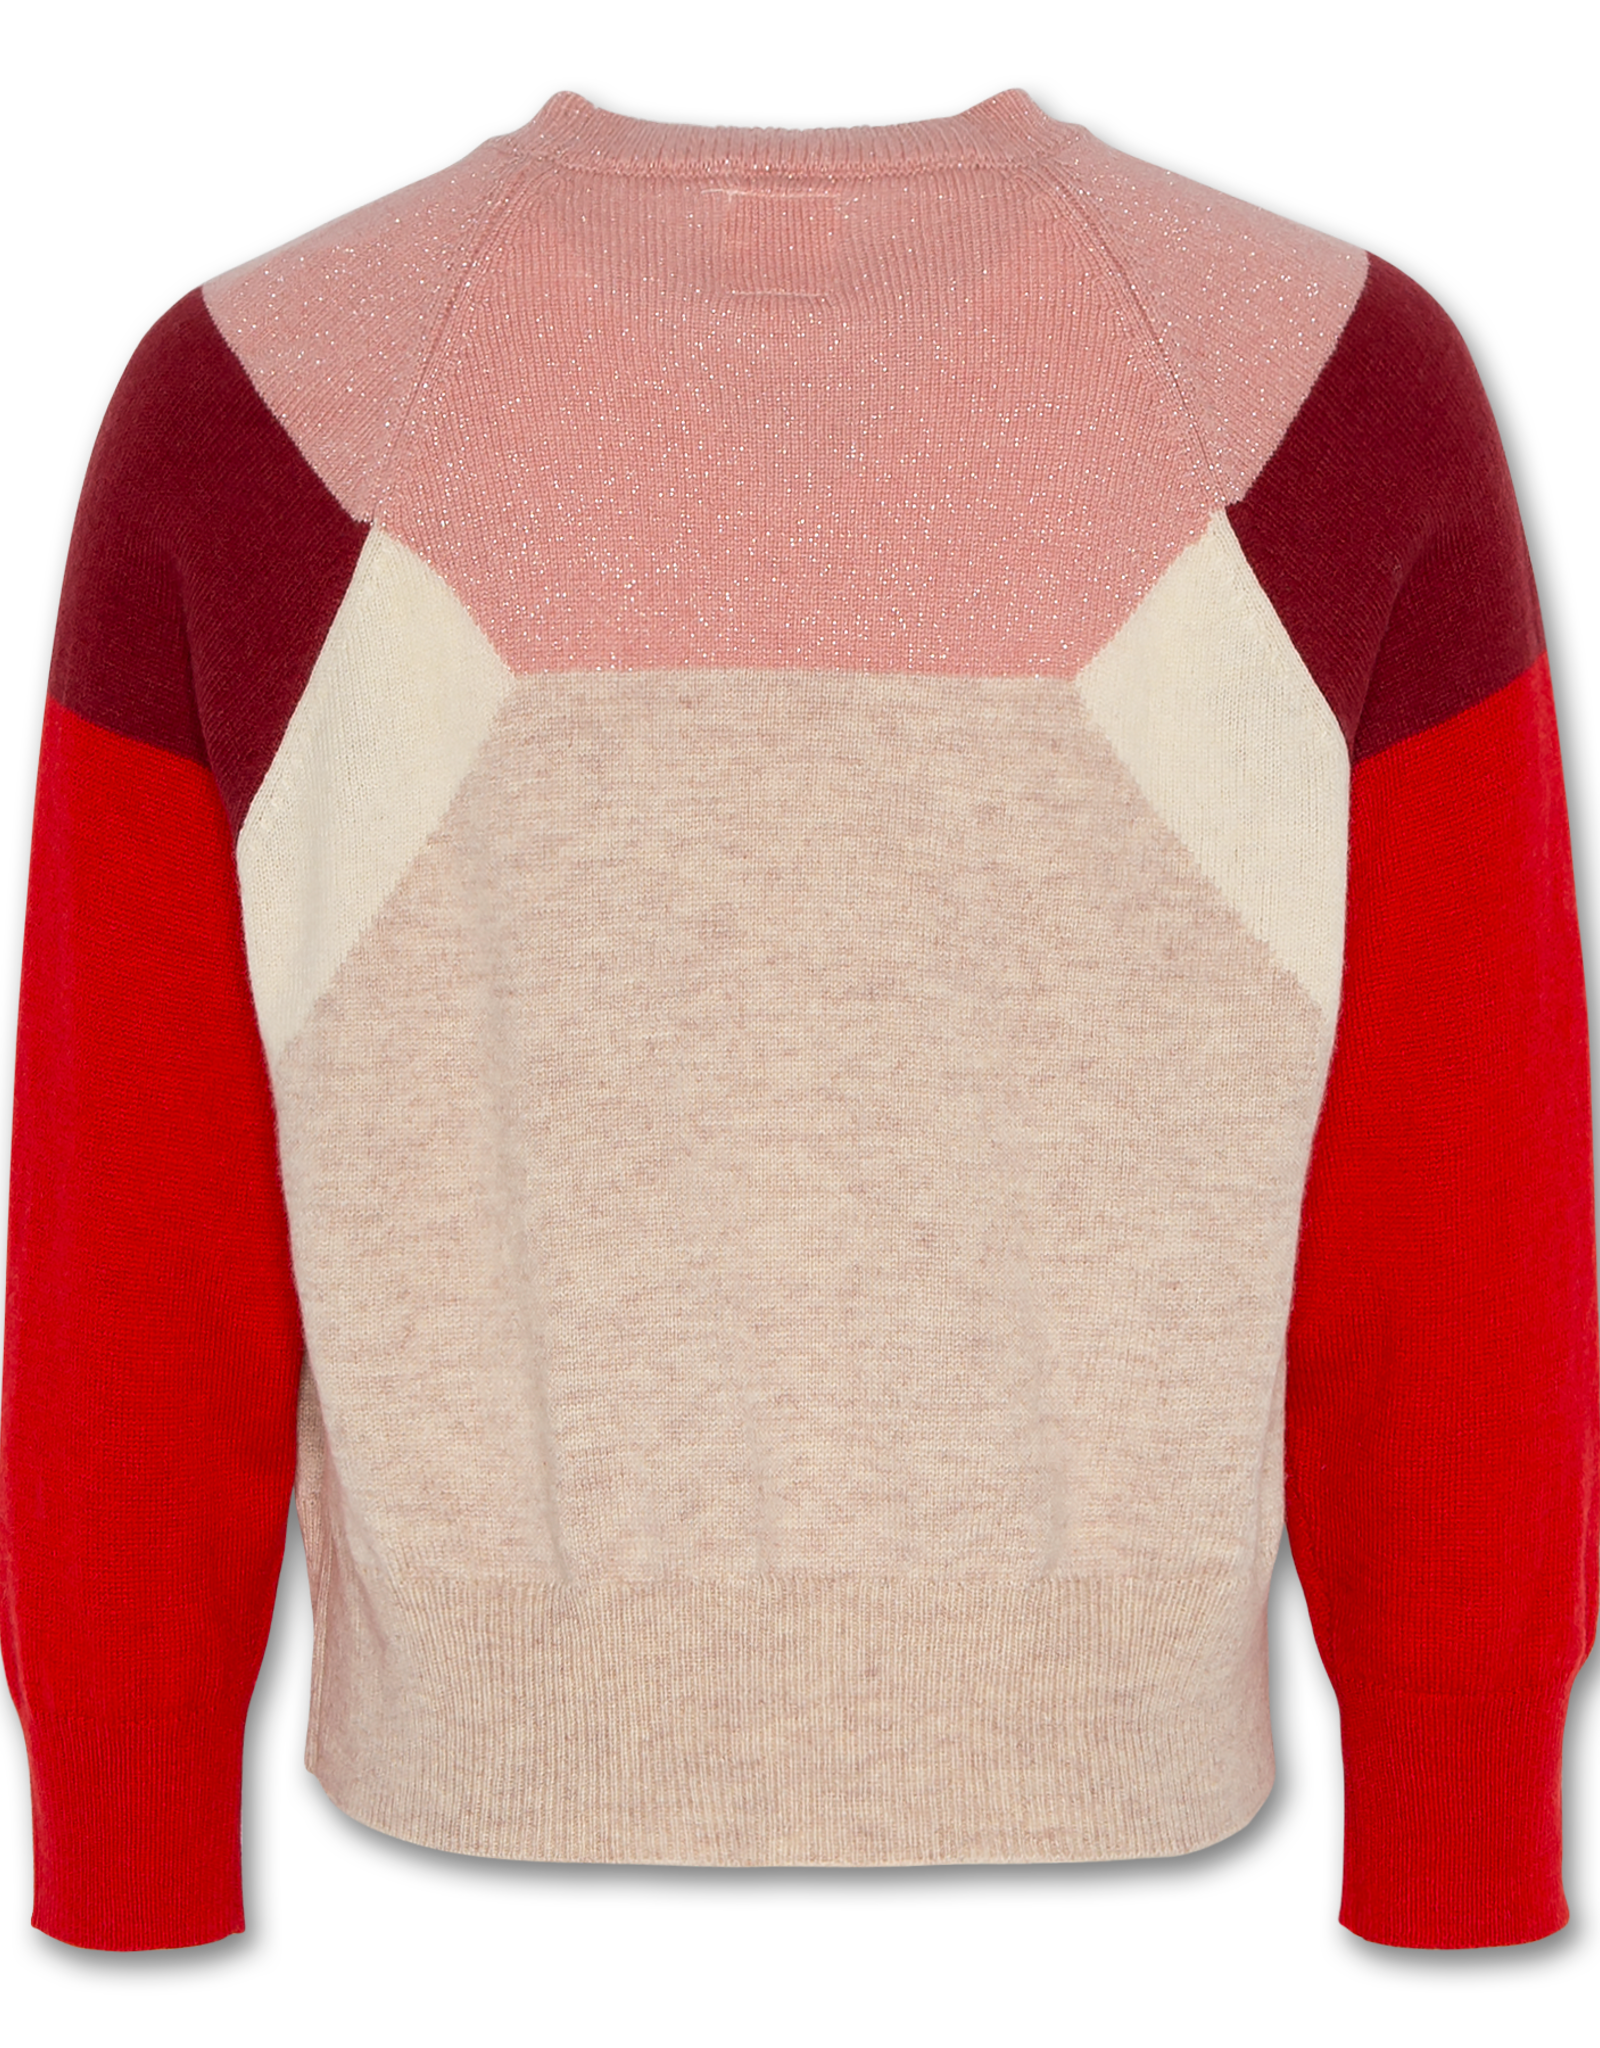 AMERICAN OUTFITTERS AO76 c-neck colour block red